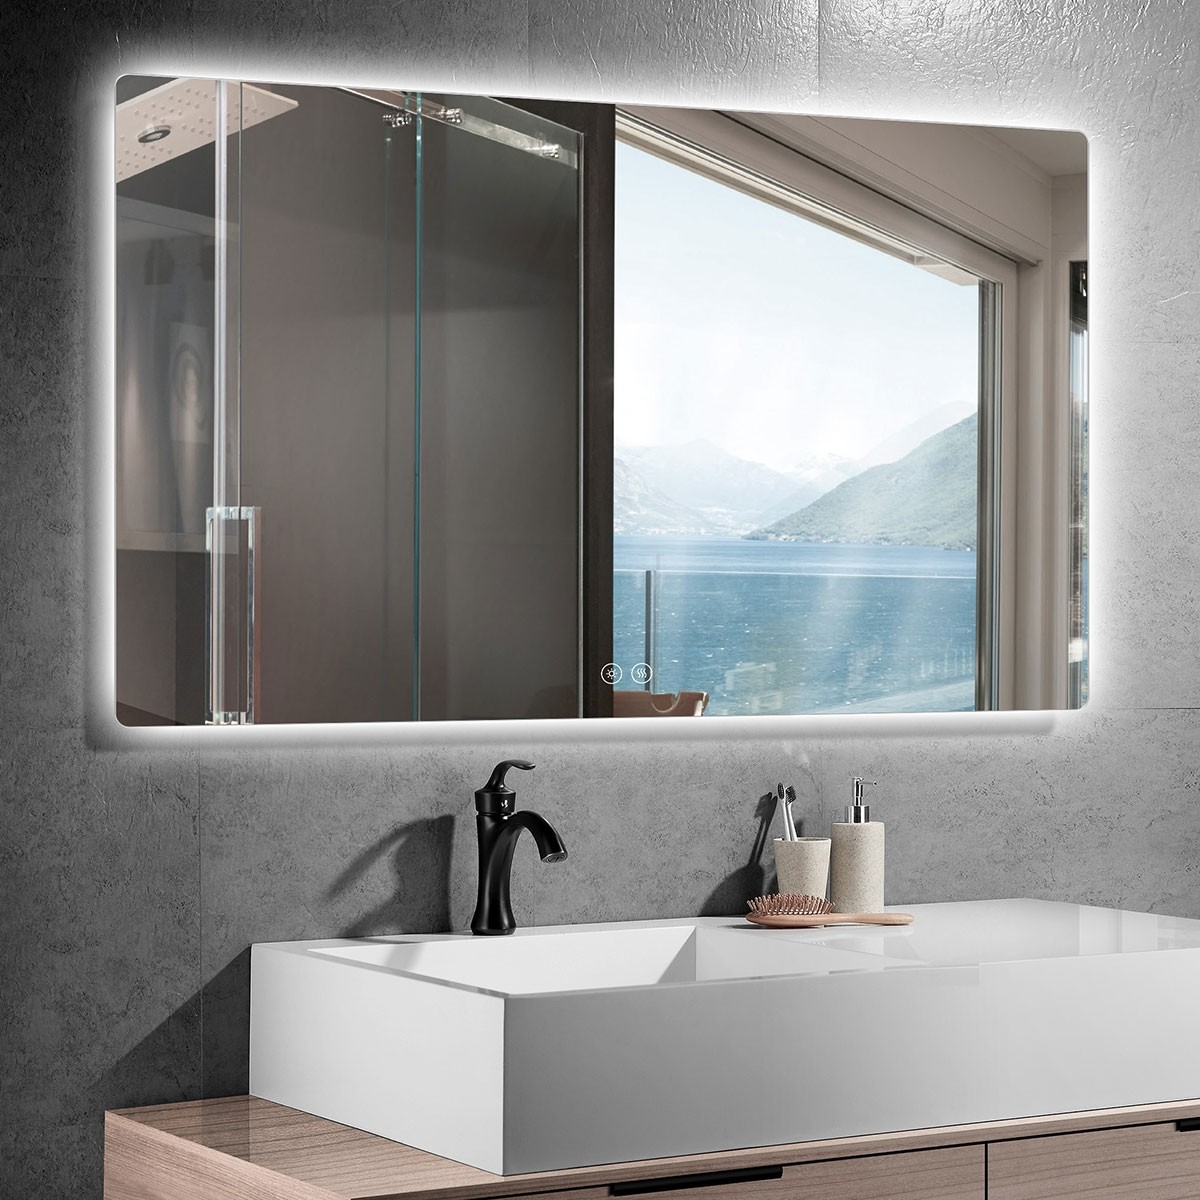 DECORAPORT 55 x 36 Inch LED Bathroom Mirror with Touch Button, Anti Fog, Dimmable, Bluetooth Speakers, Vertical & Horizontal Mount (AV1-5536)